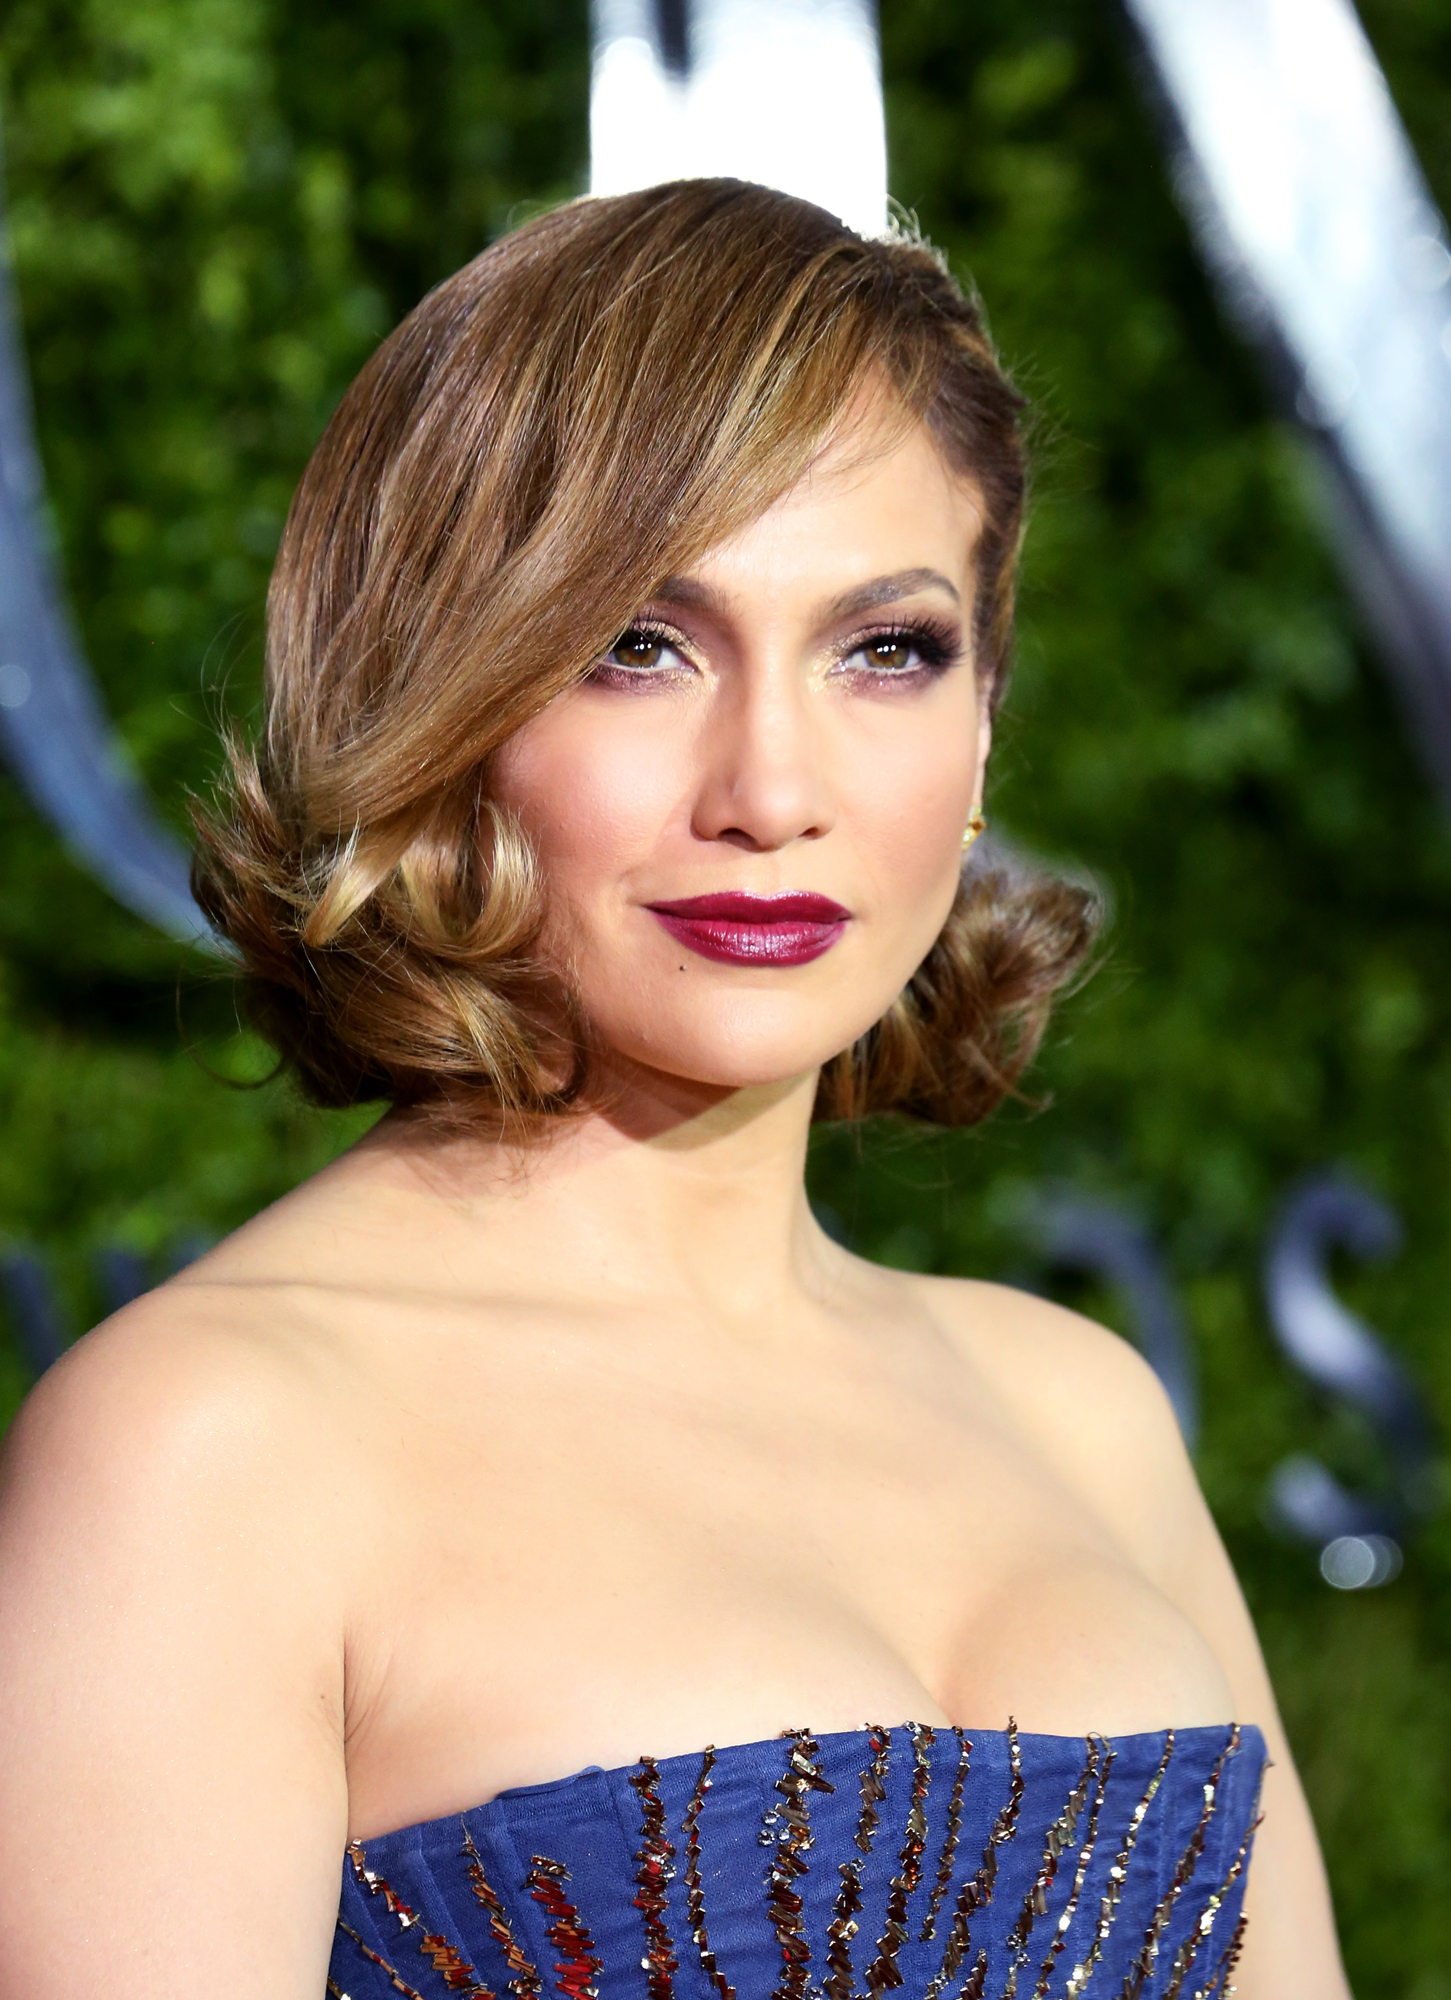 Jennifer Lopez attends the 2015 Tony Awards at Radio City Music Hall on June 7, 2015 in New York City.